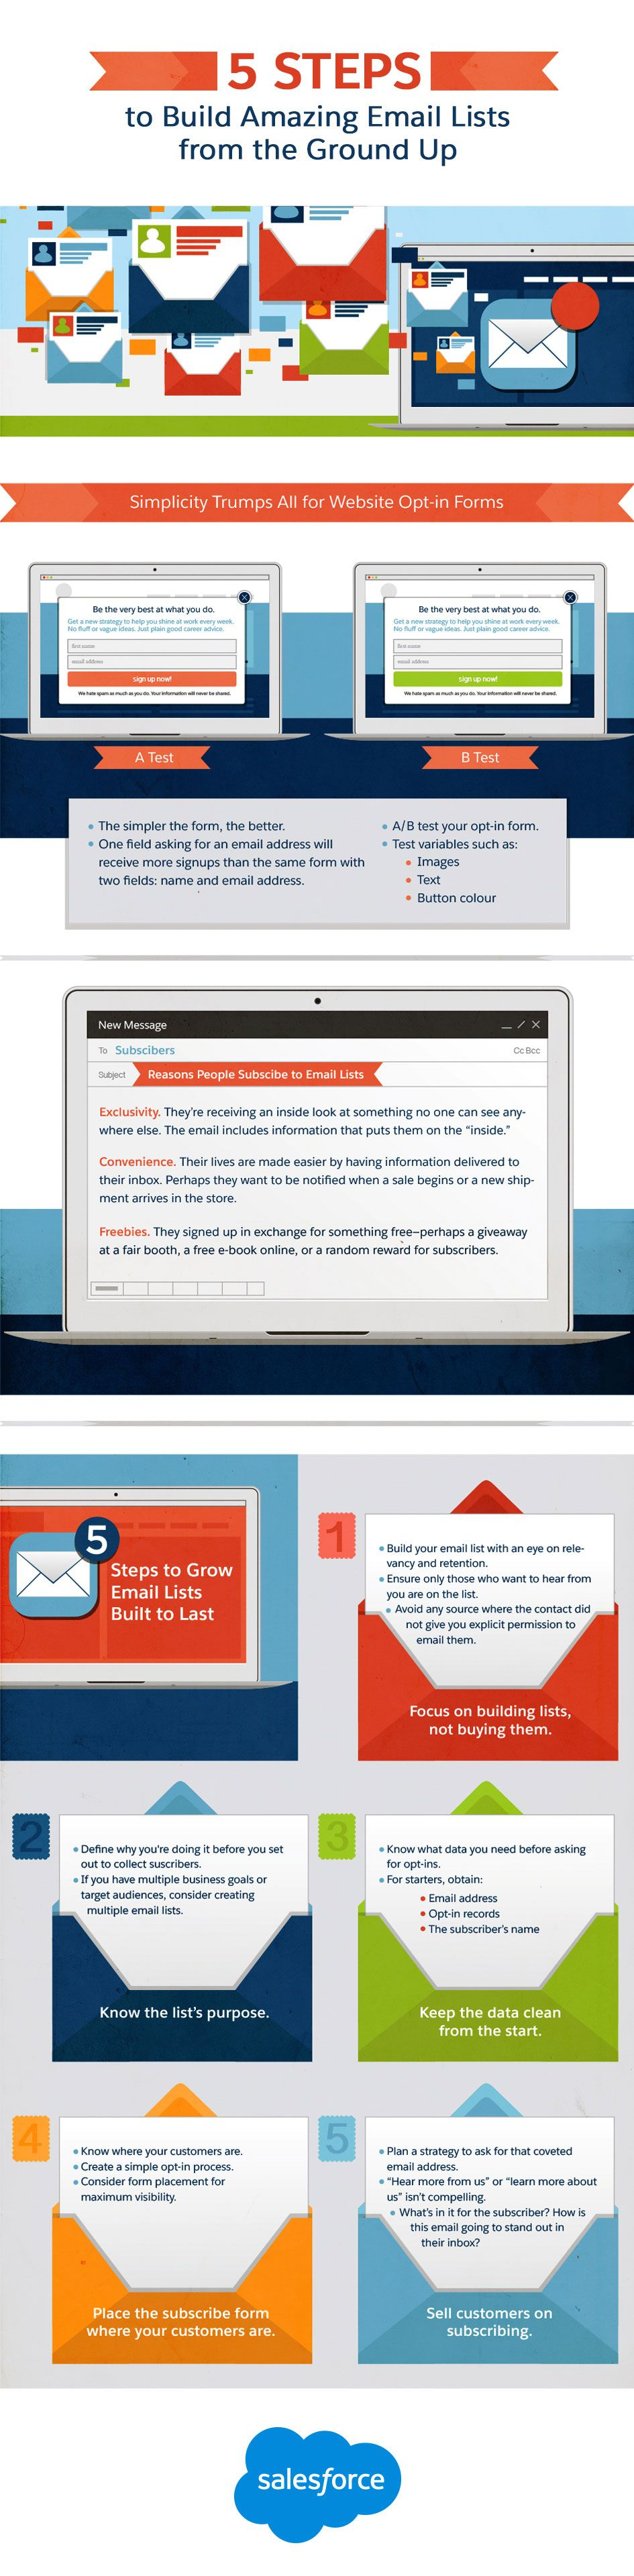 5 Steps to Build Amazing Email Lists from the Ground Up